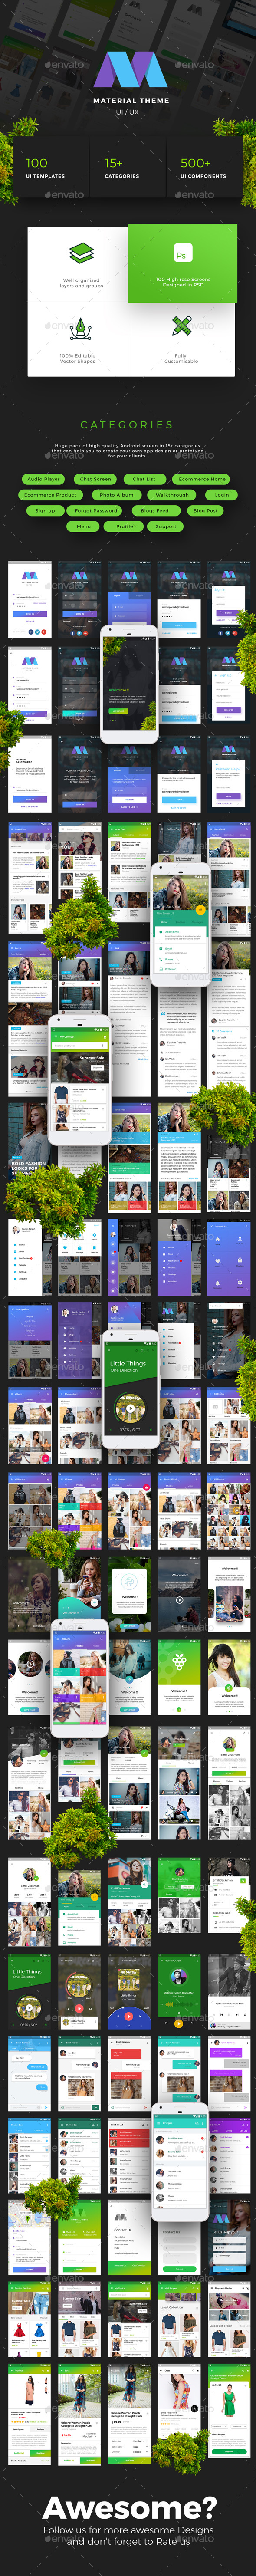 GraphicRiver Material Design Theme UX UI Kit by Opus Labs 20831944